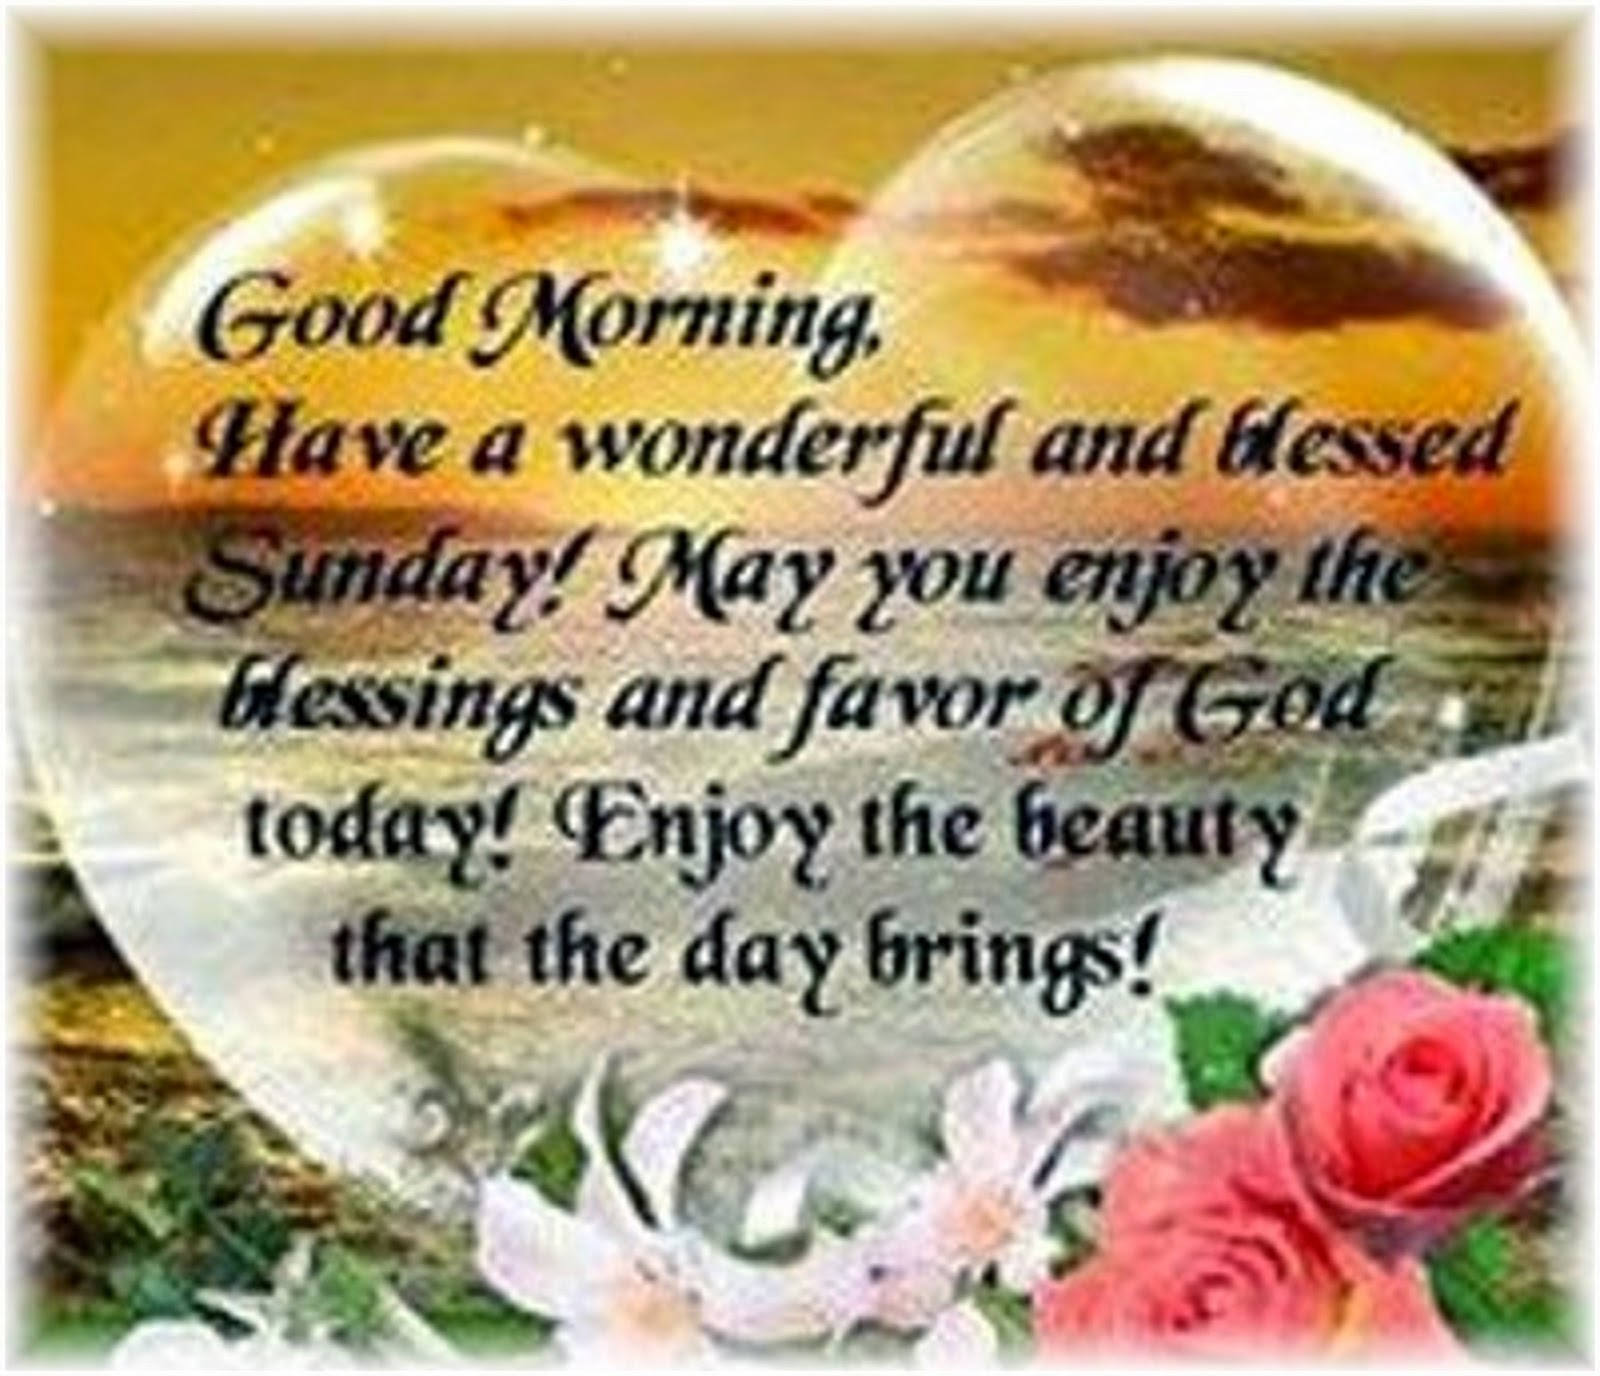 good morning everyone have a wonderful and blessed sunday